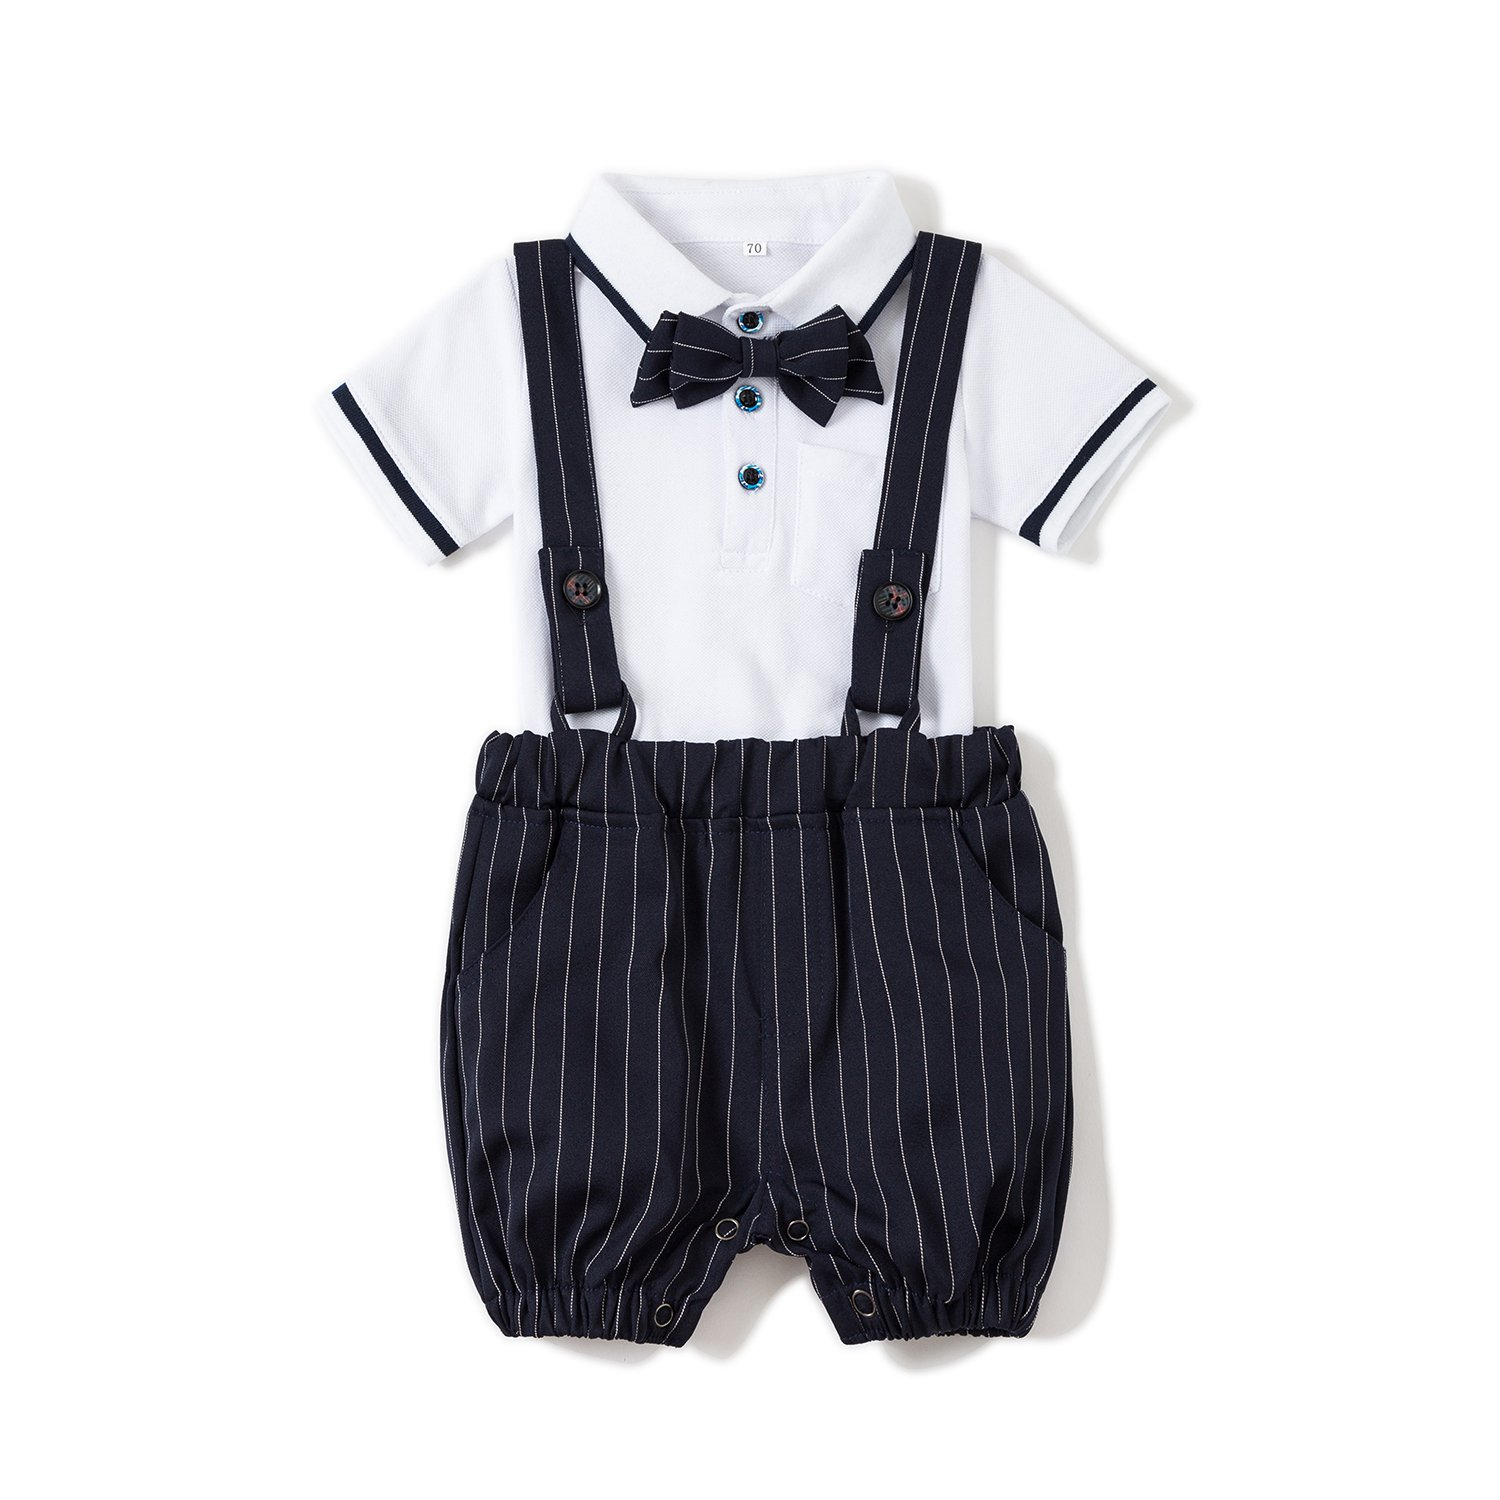 Baby Boys Gentleman Jumpsuit Outfits Suits Bow Tie Overalls Clothes Set(13-18Months)